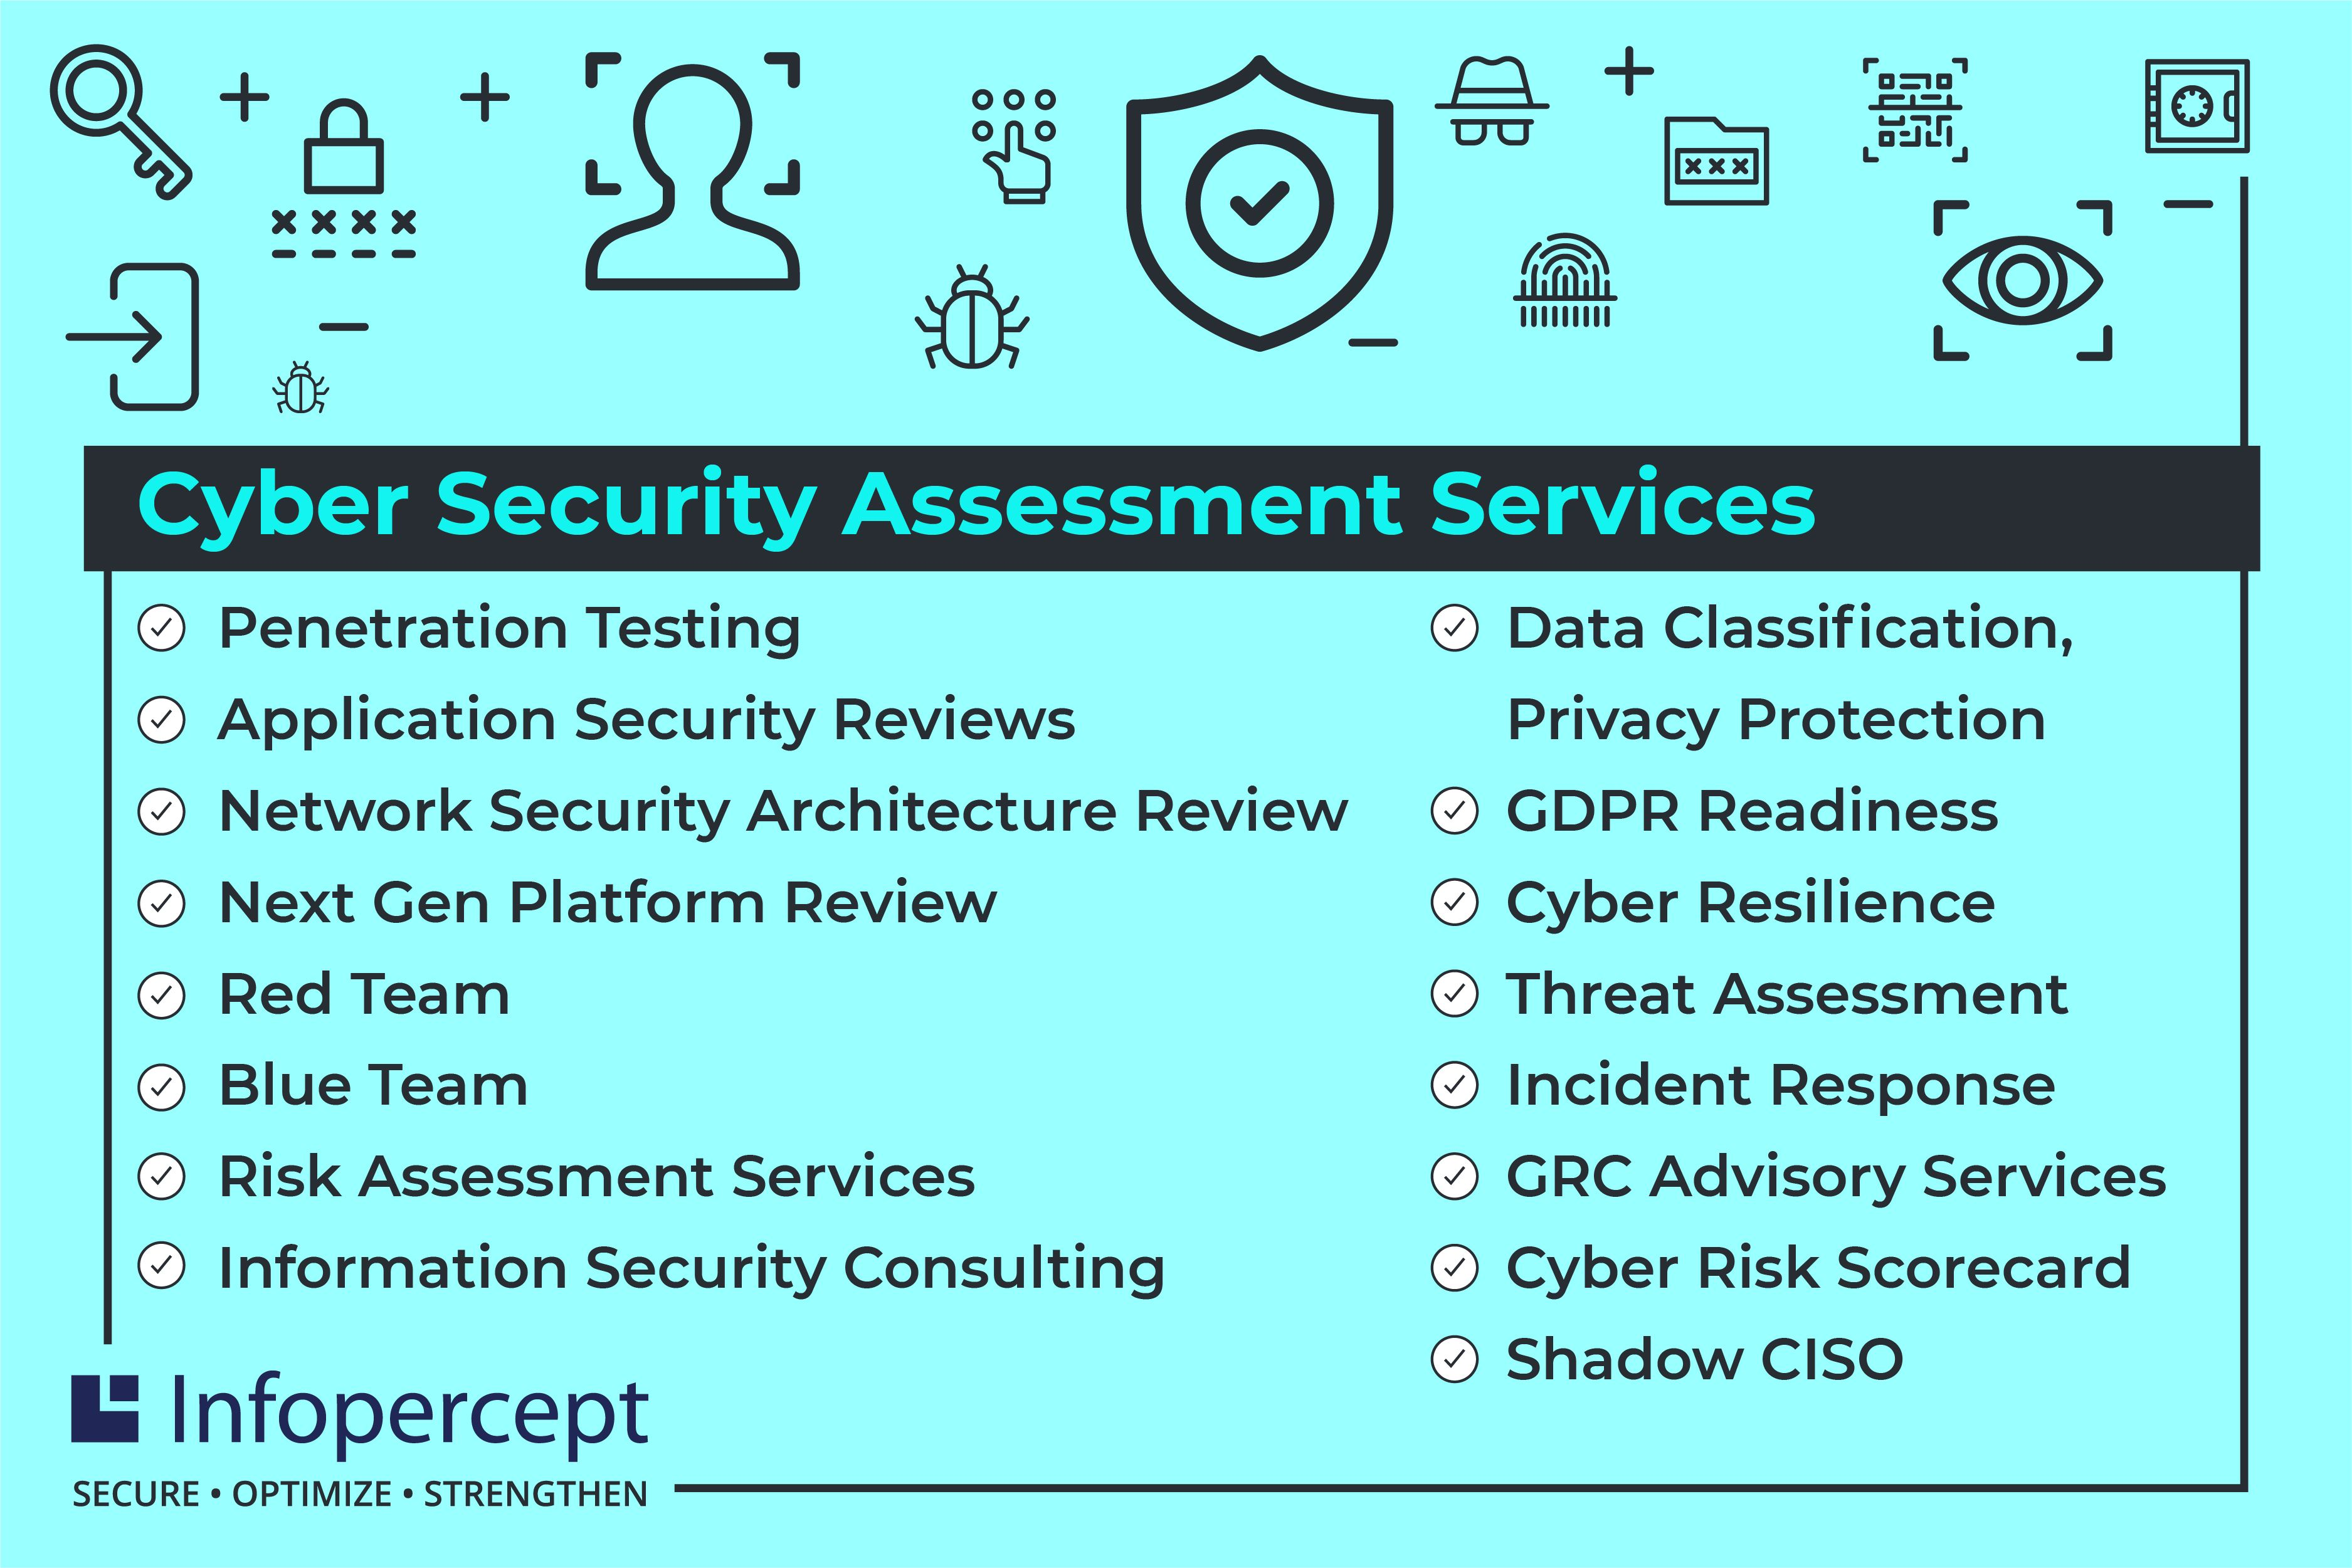 Cybersecurity Assessment Services Cyber Security Security Assessment Assessment